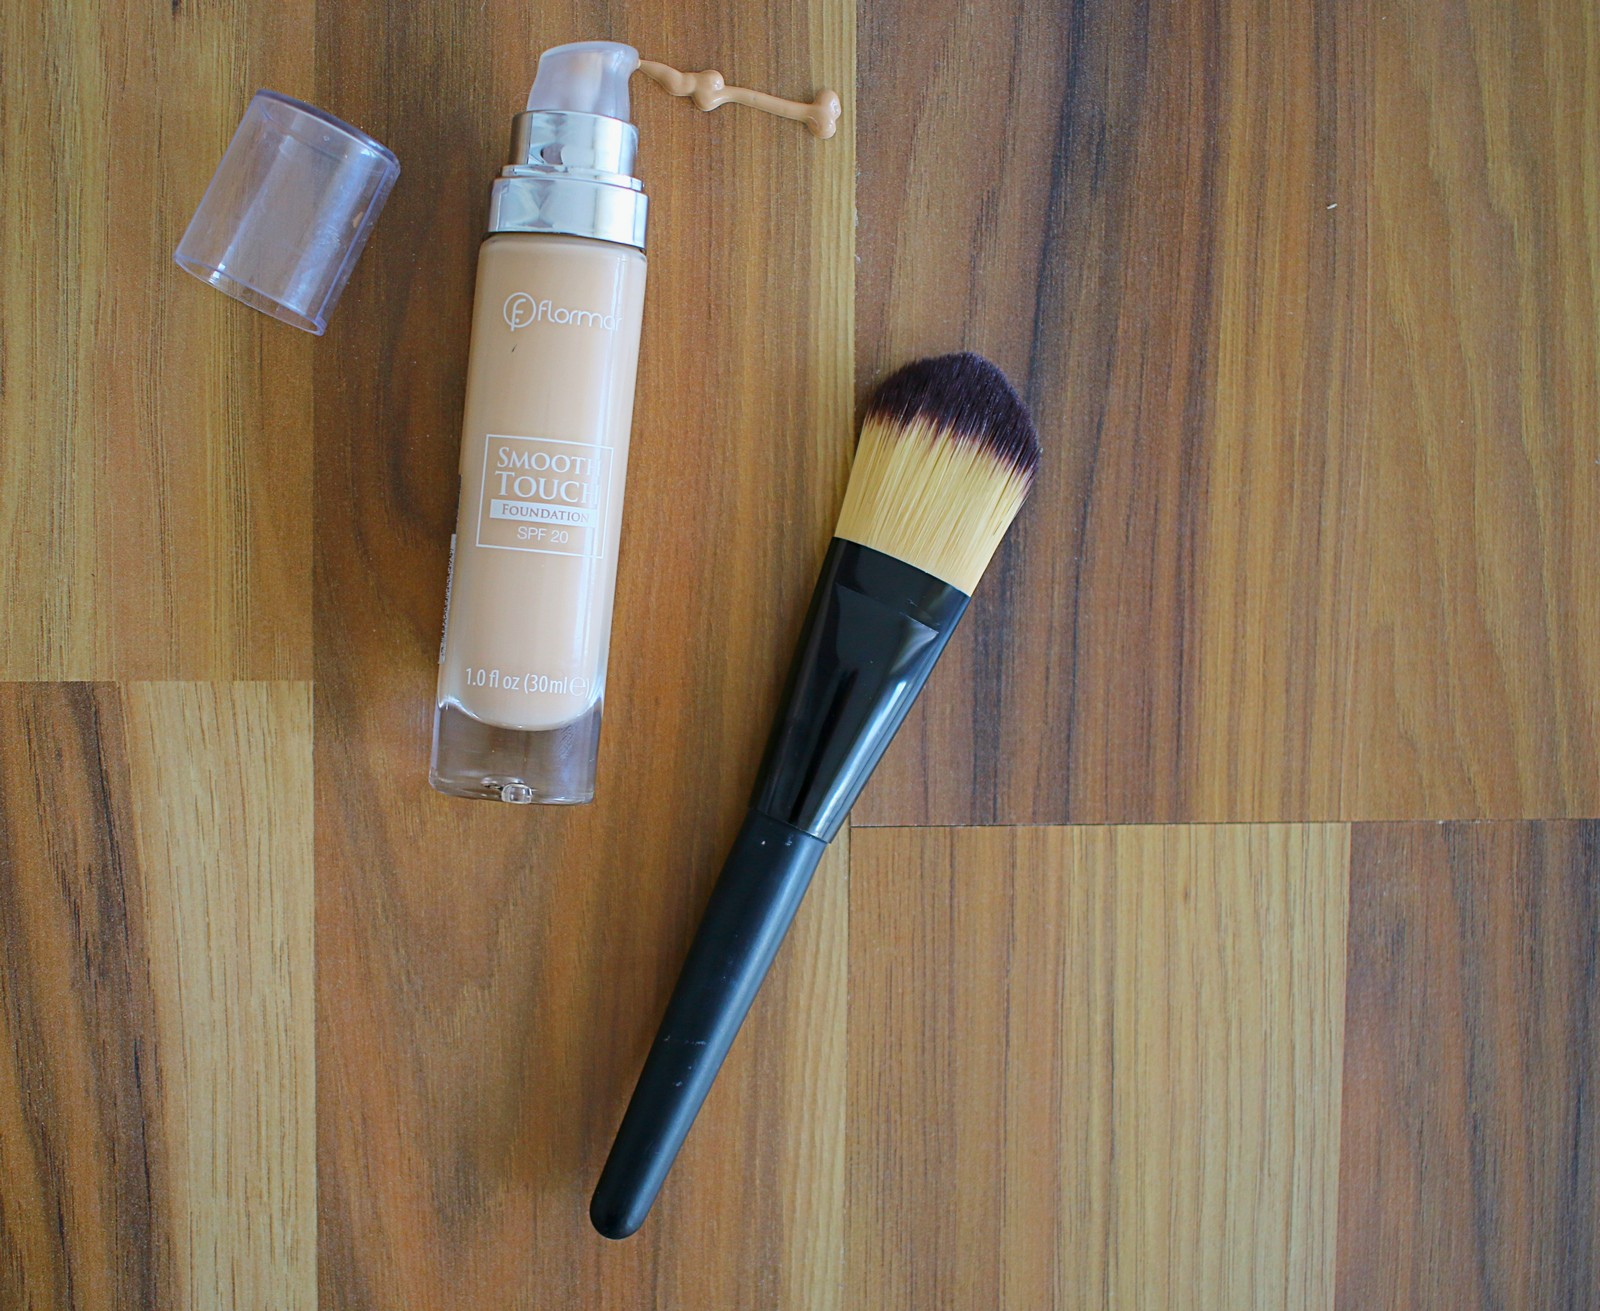 flormar-smooth-touch-review-pareri